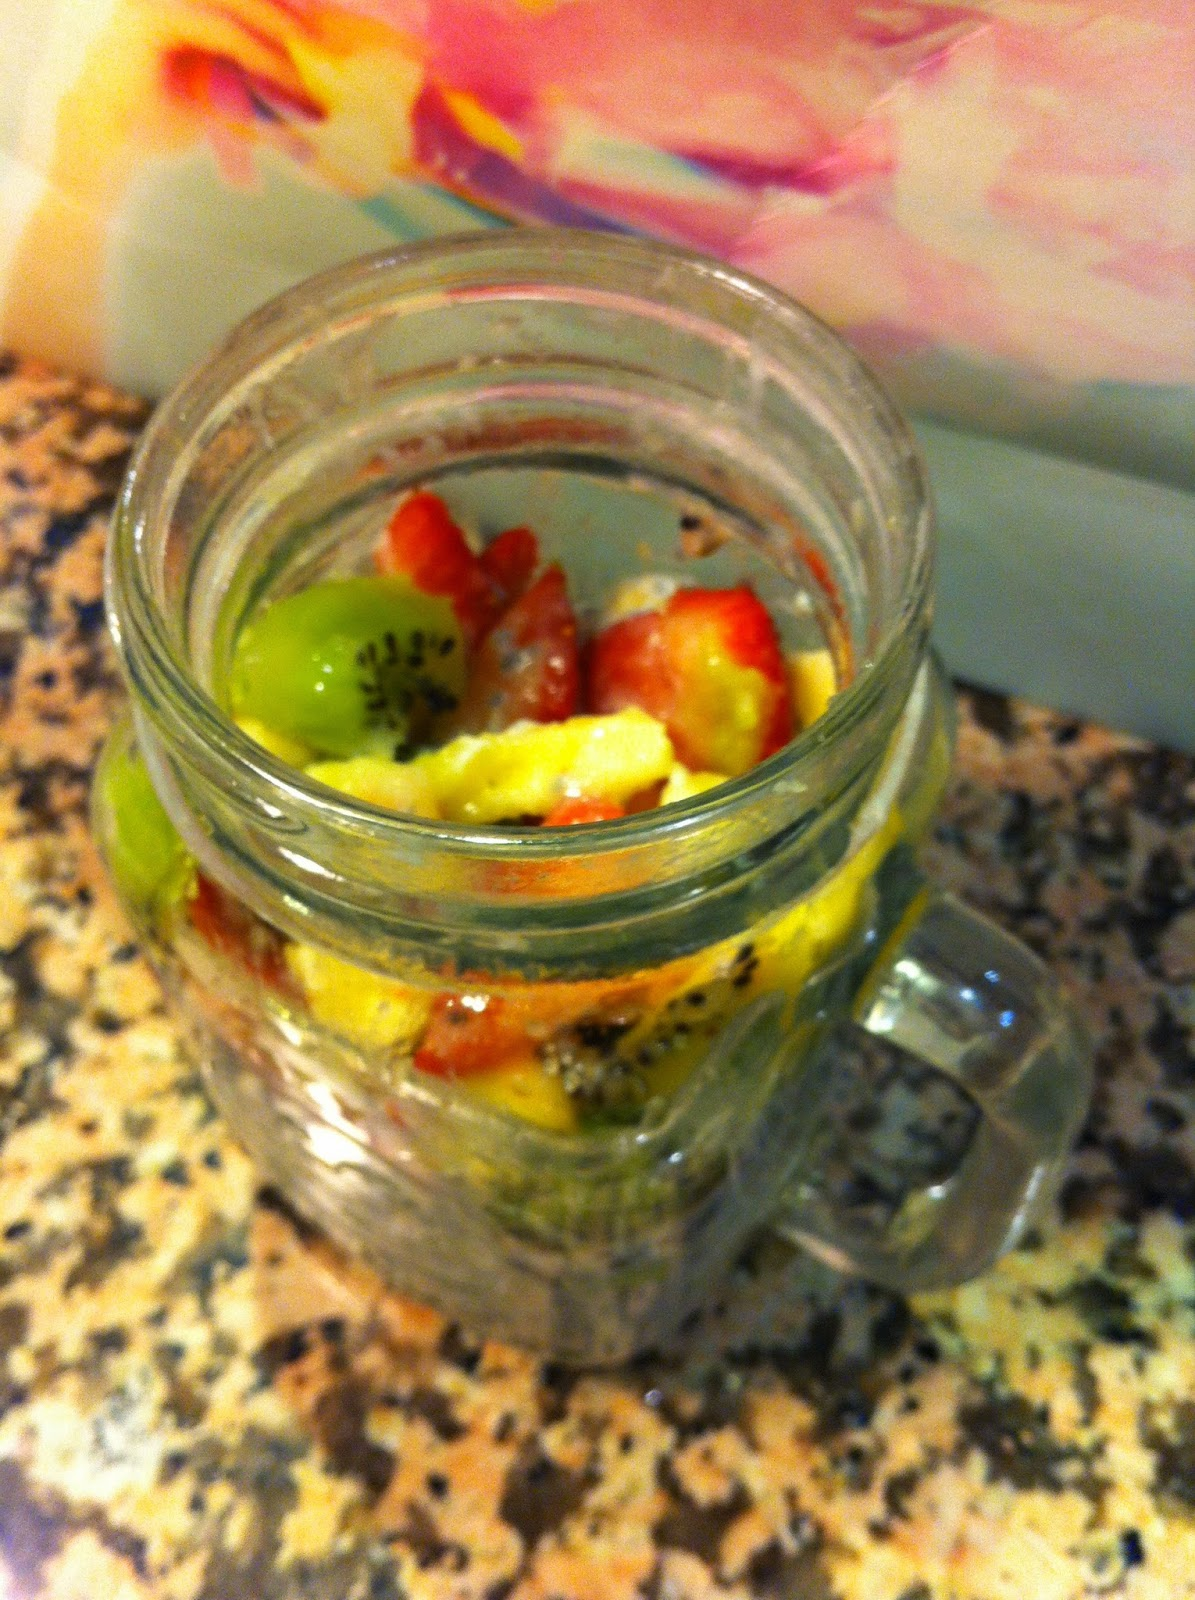 Refrigerator Oatmeal, Breakfast with Kiwi Banana Strawberries Raspberries and Chia in a Mason Jar